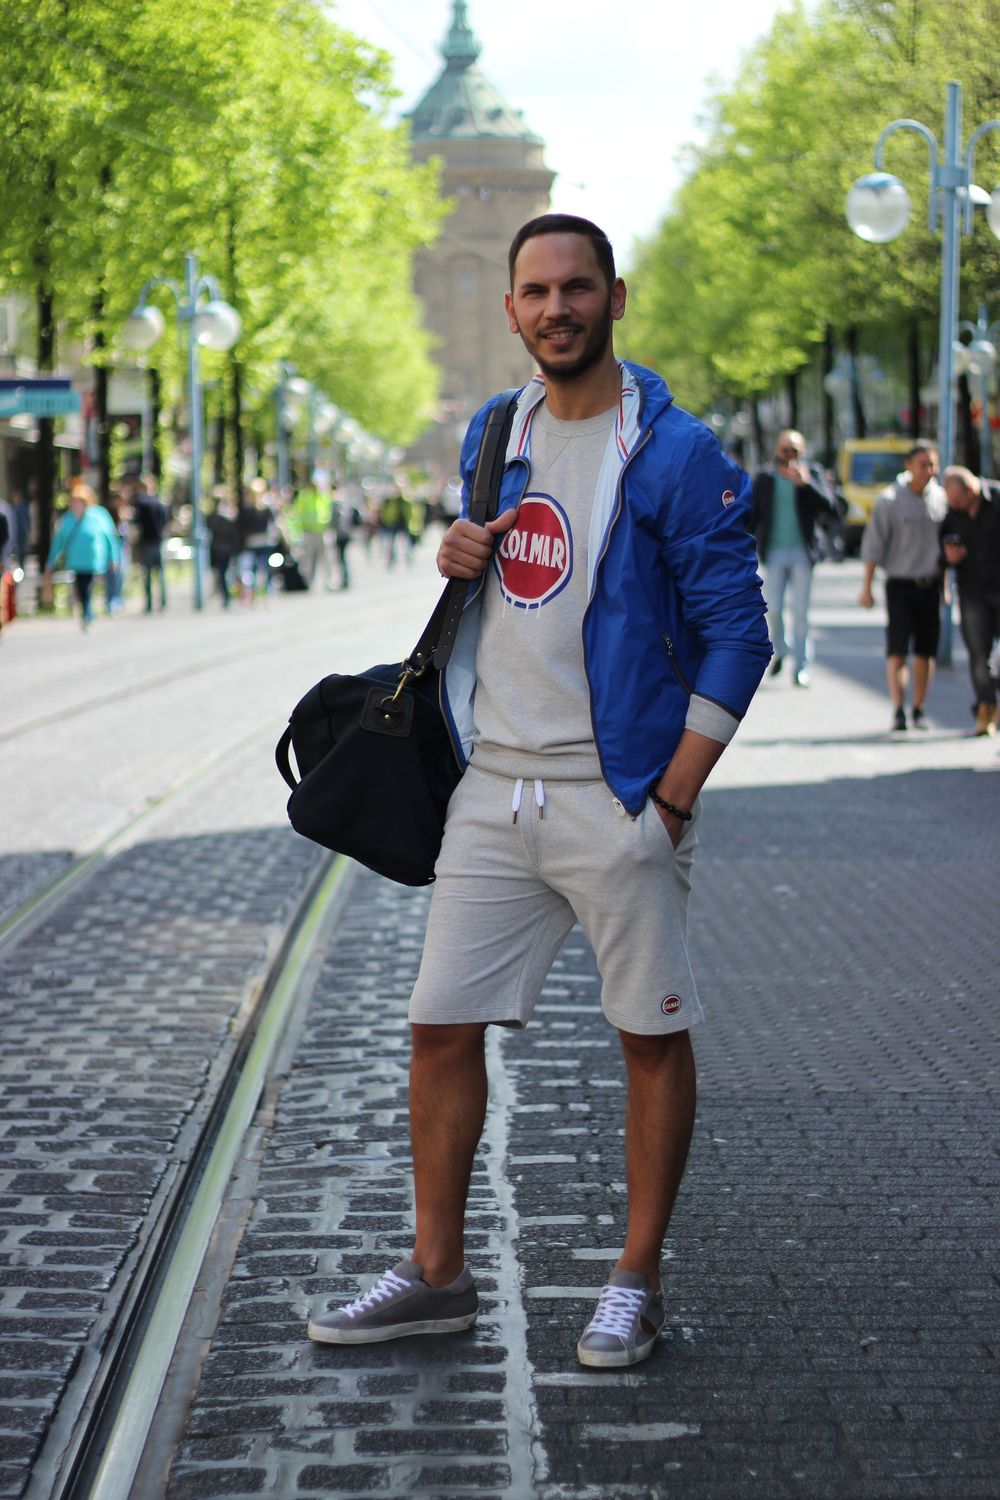 Outfit of the Day: Daniele in Colmar